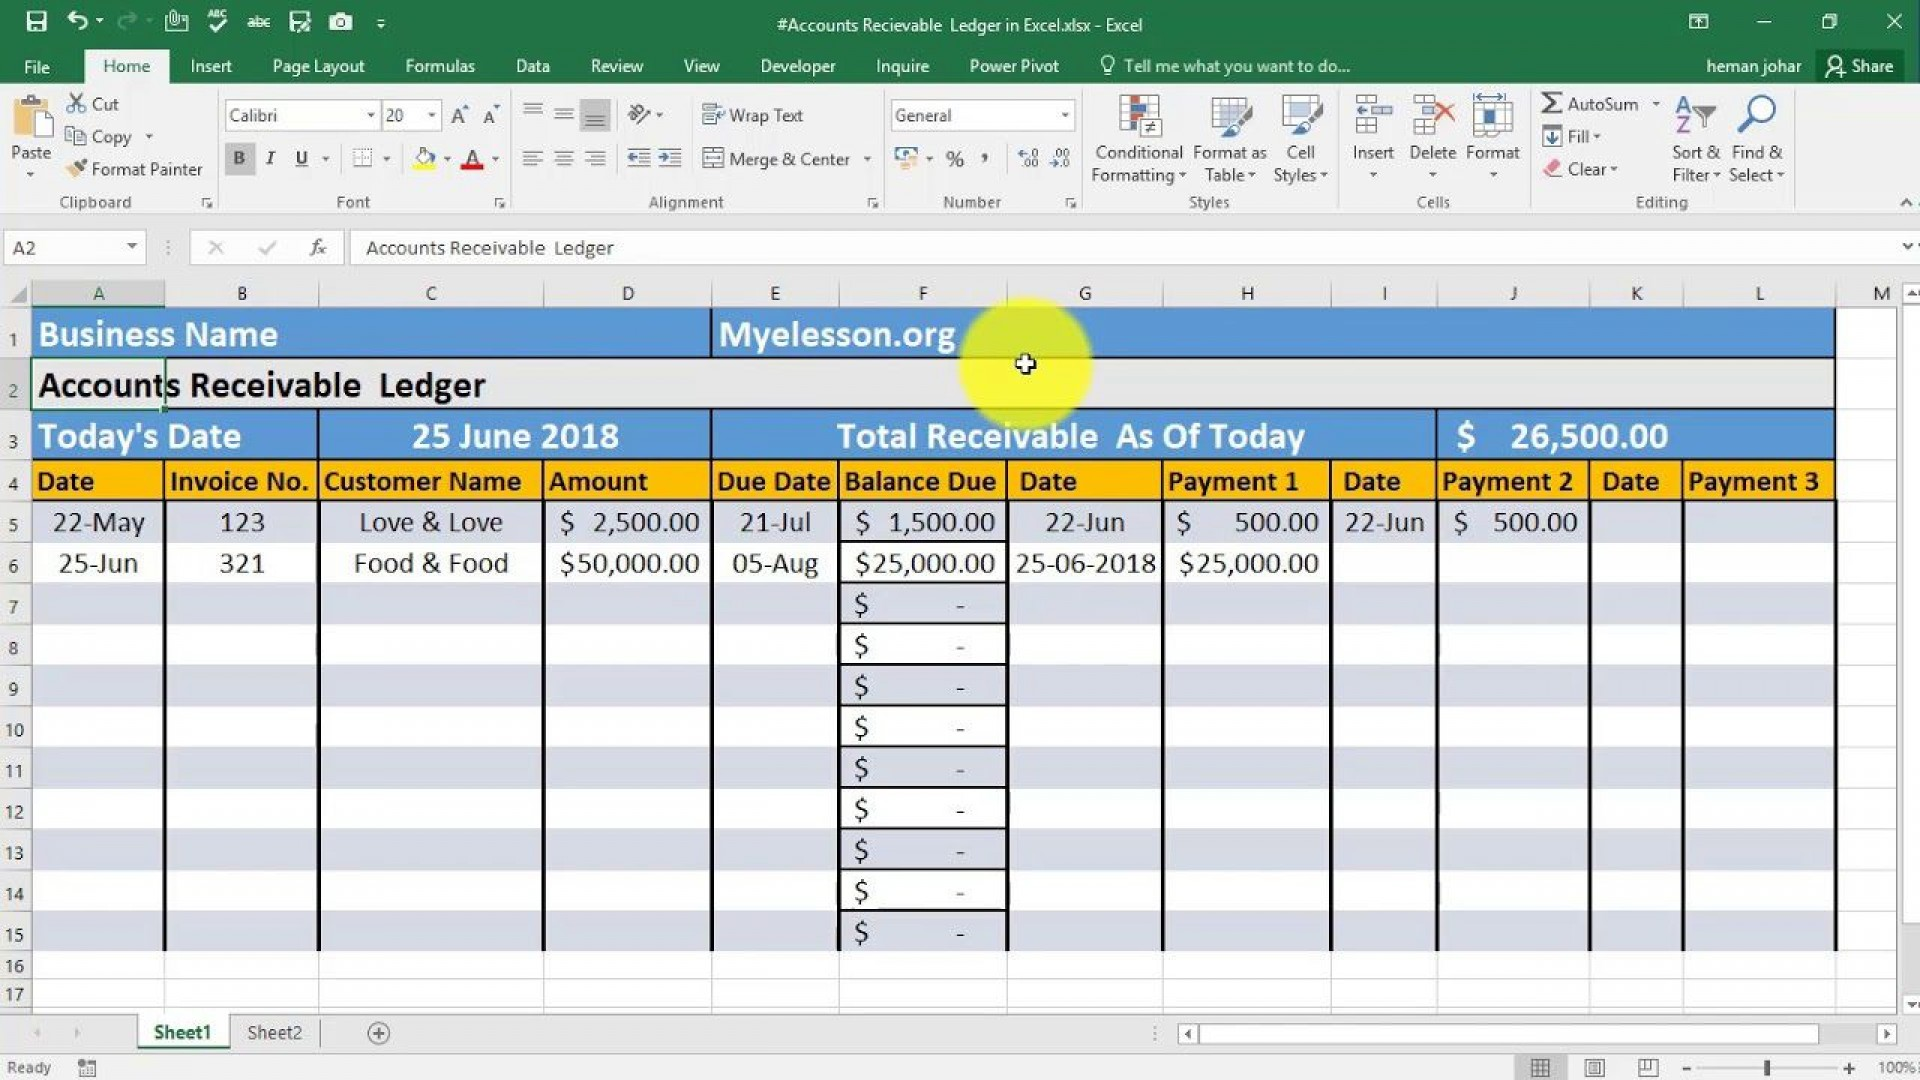 009 Unforgettable Account Receivable Excel Spreadsheet Template Concept  Management Dashboard Free1920